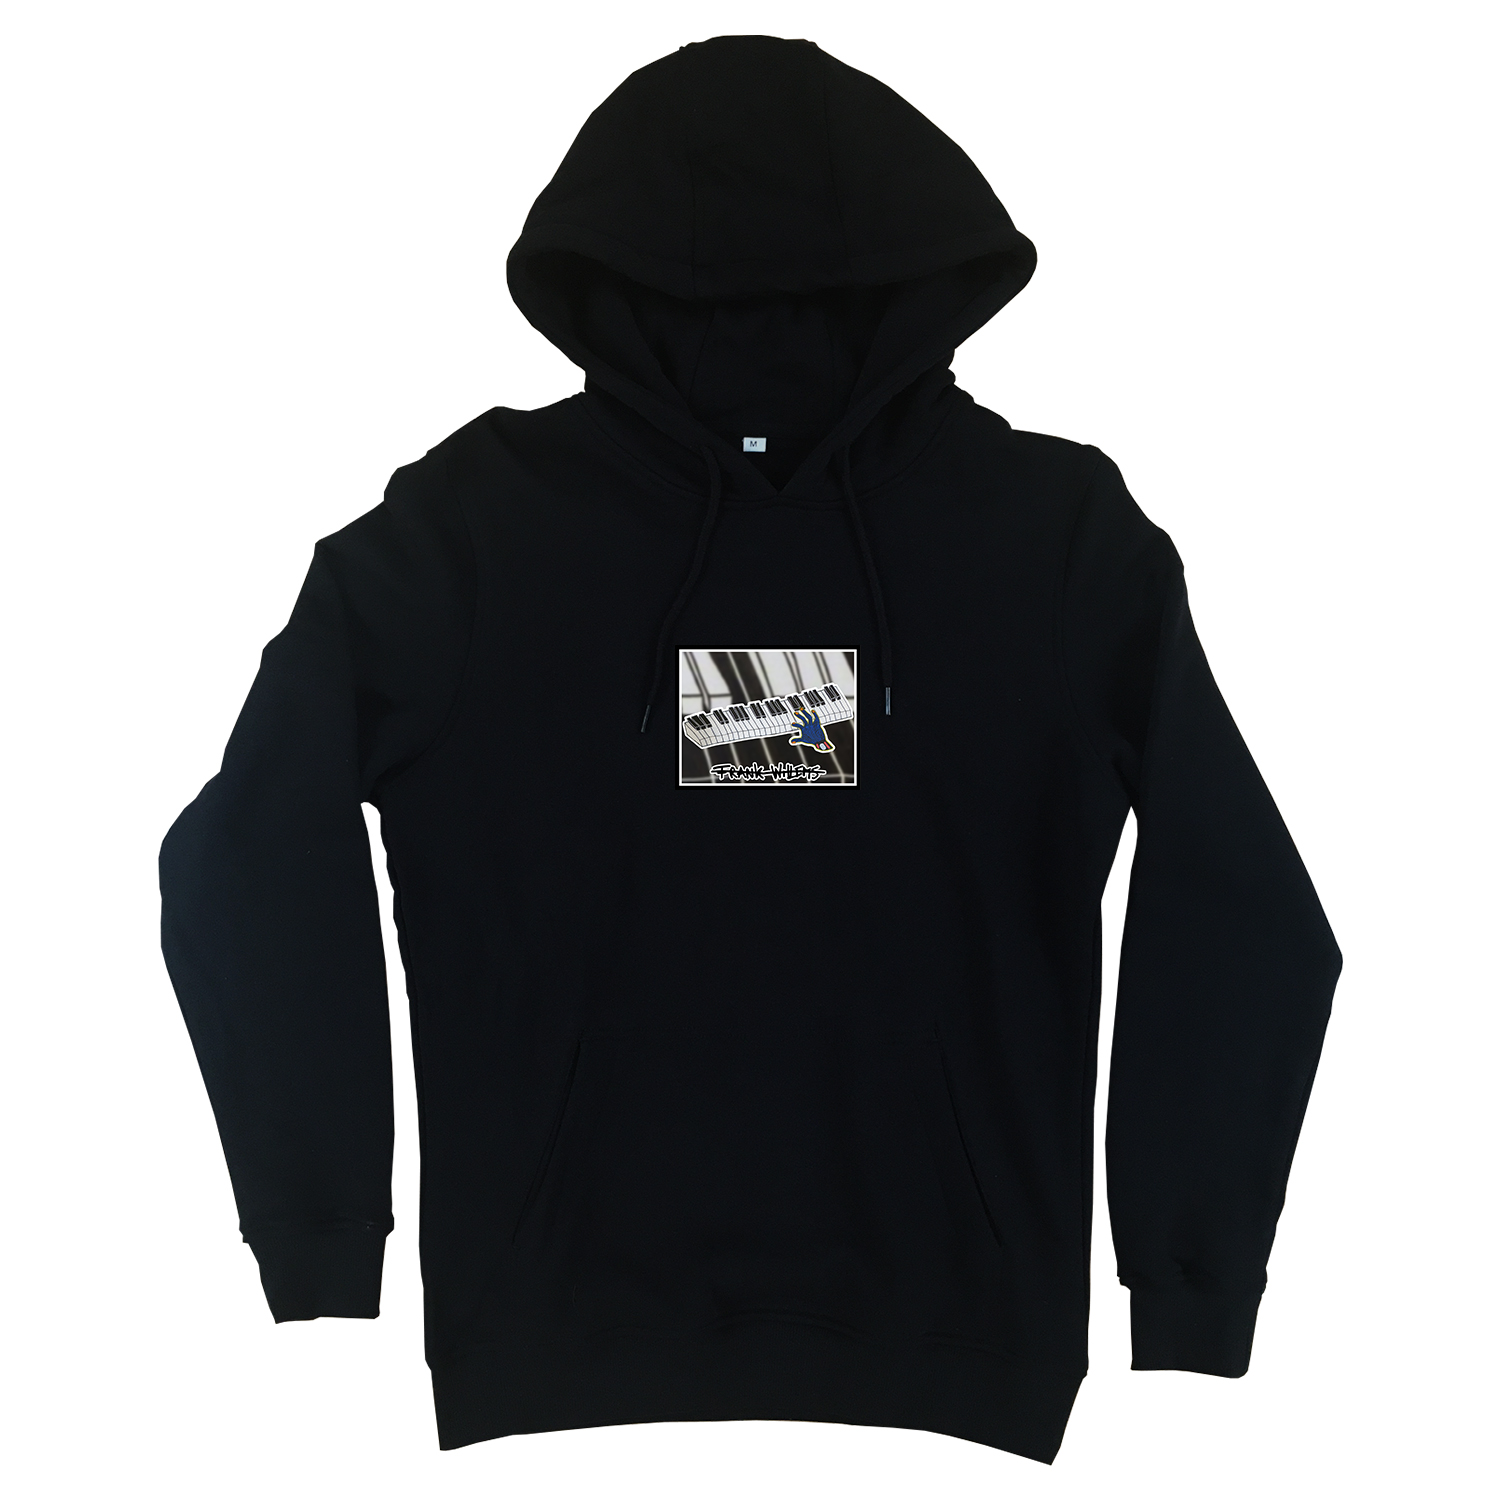 Hoodie black - ONE PRESS CLOSER TO MUSIC - Frank Willems